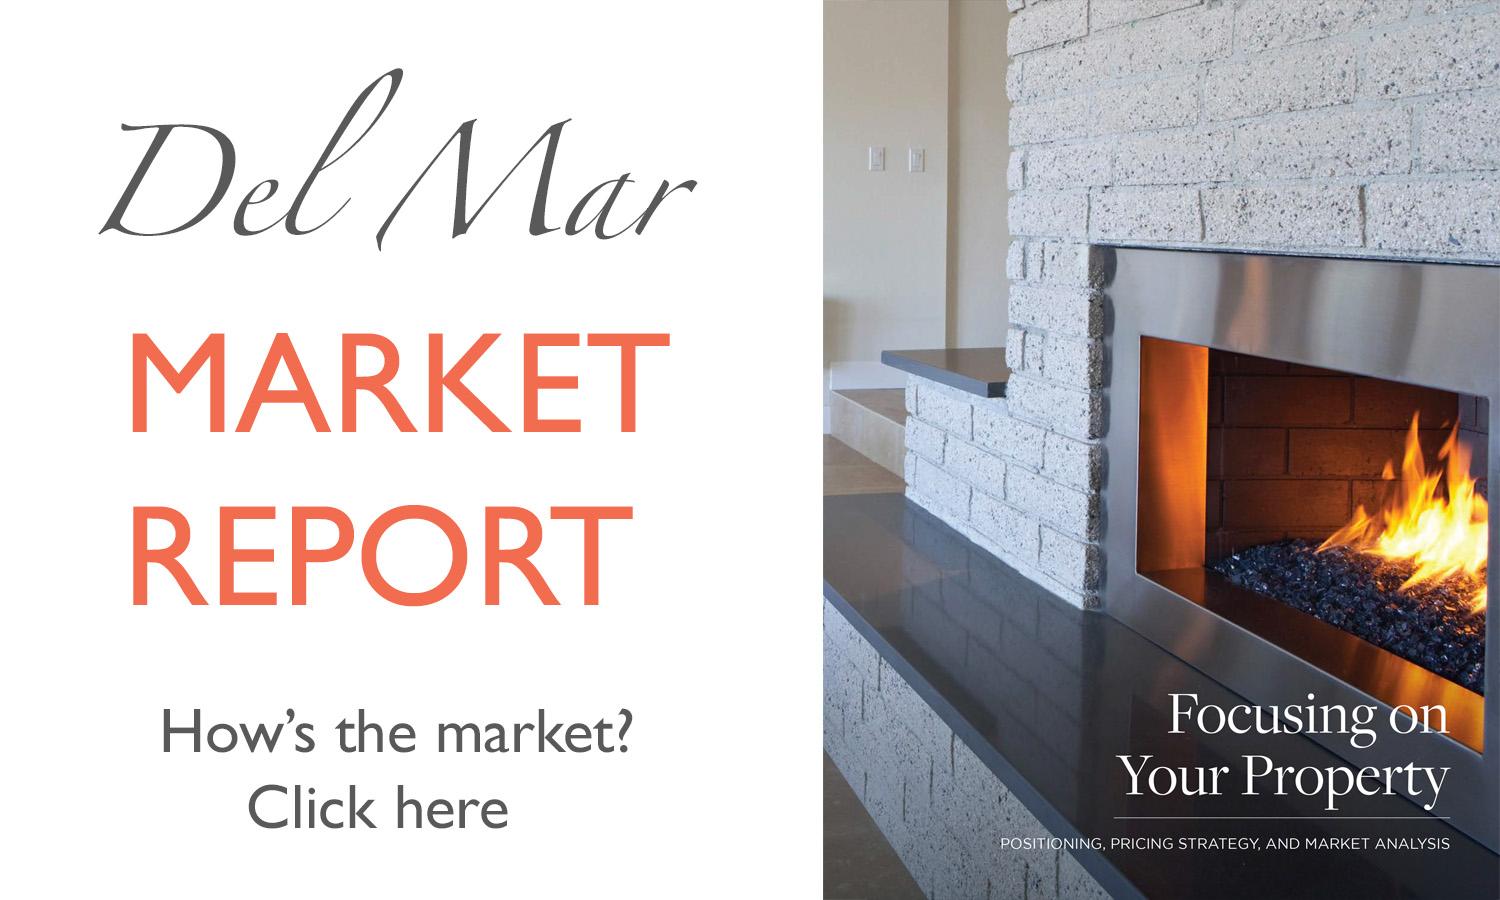 How is the Del Mar Real Estate Market?